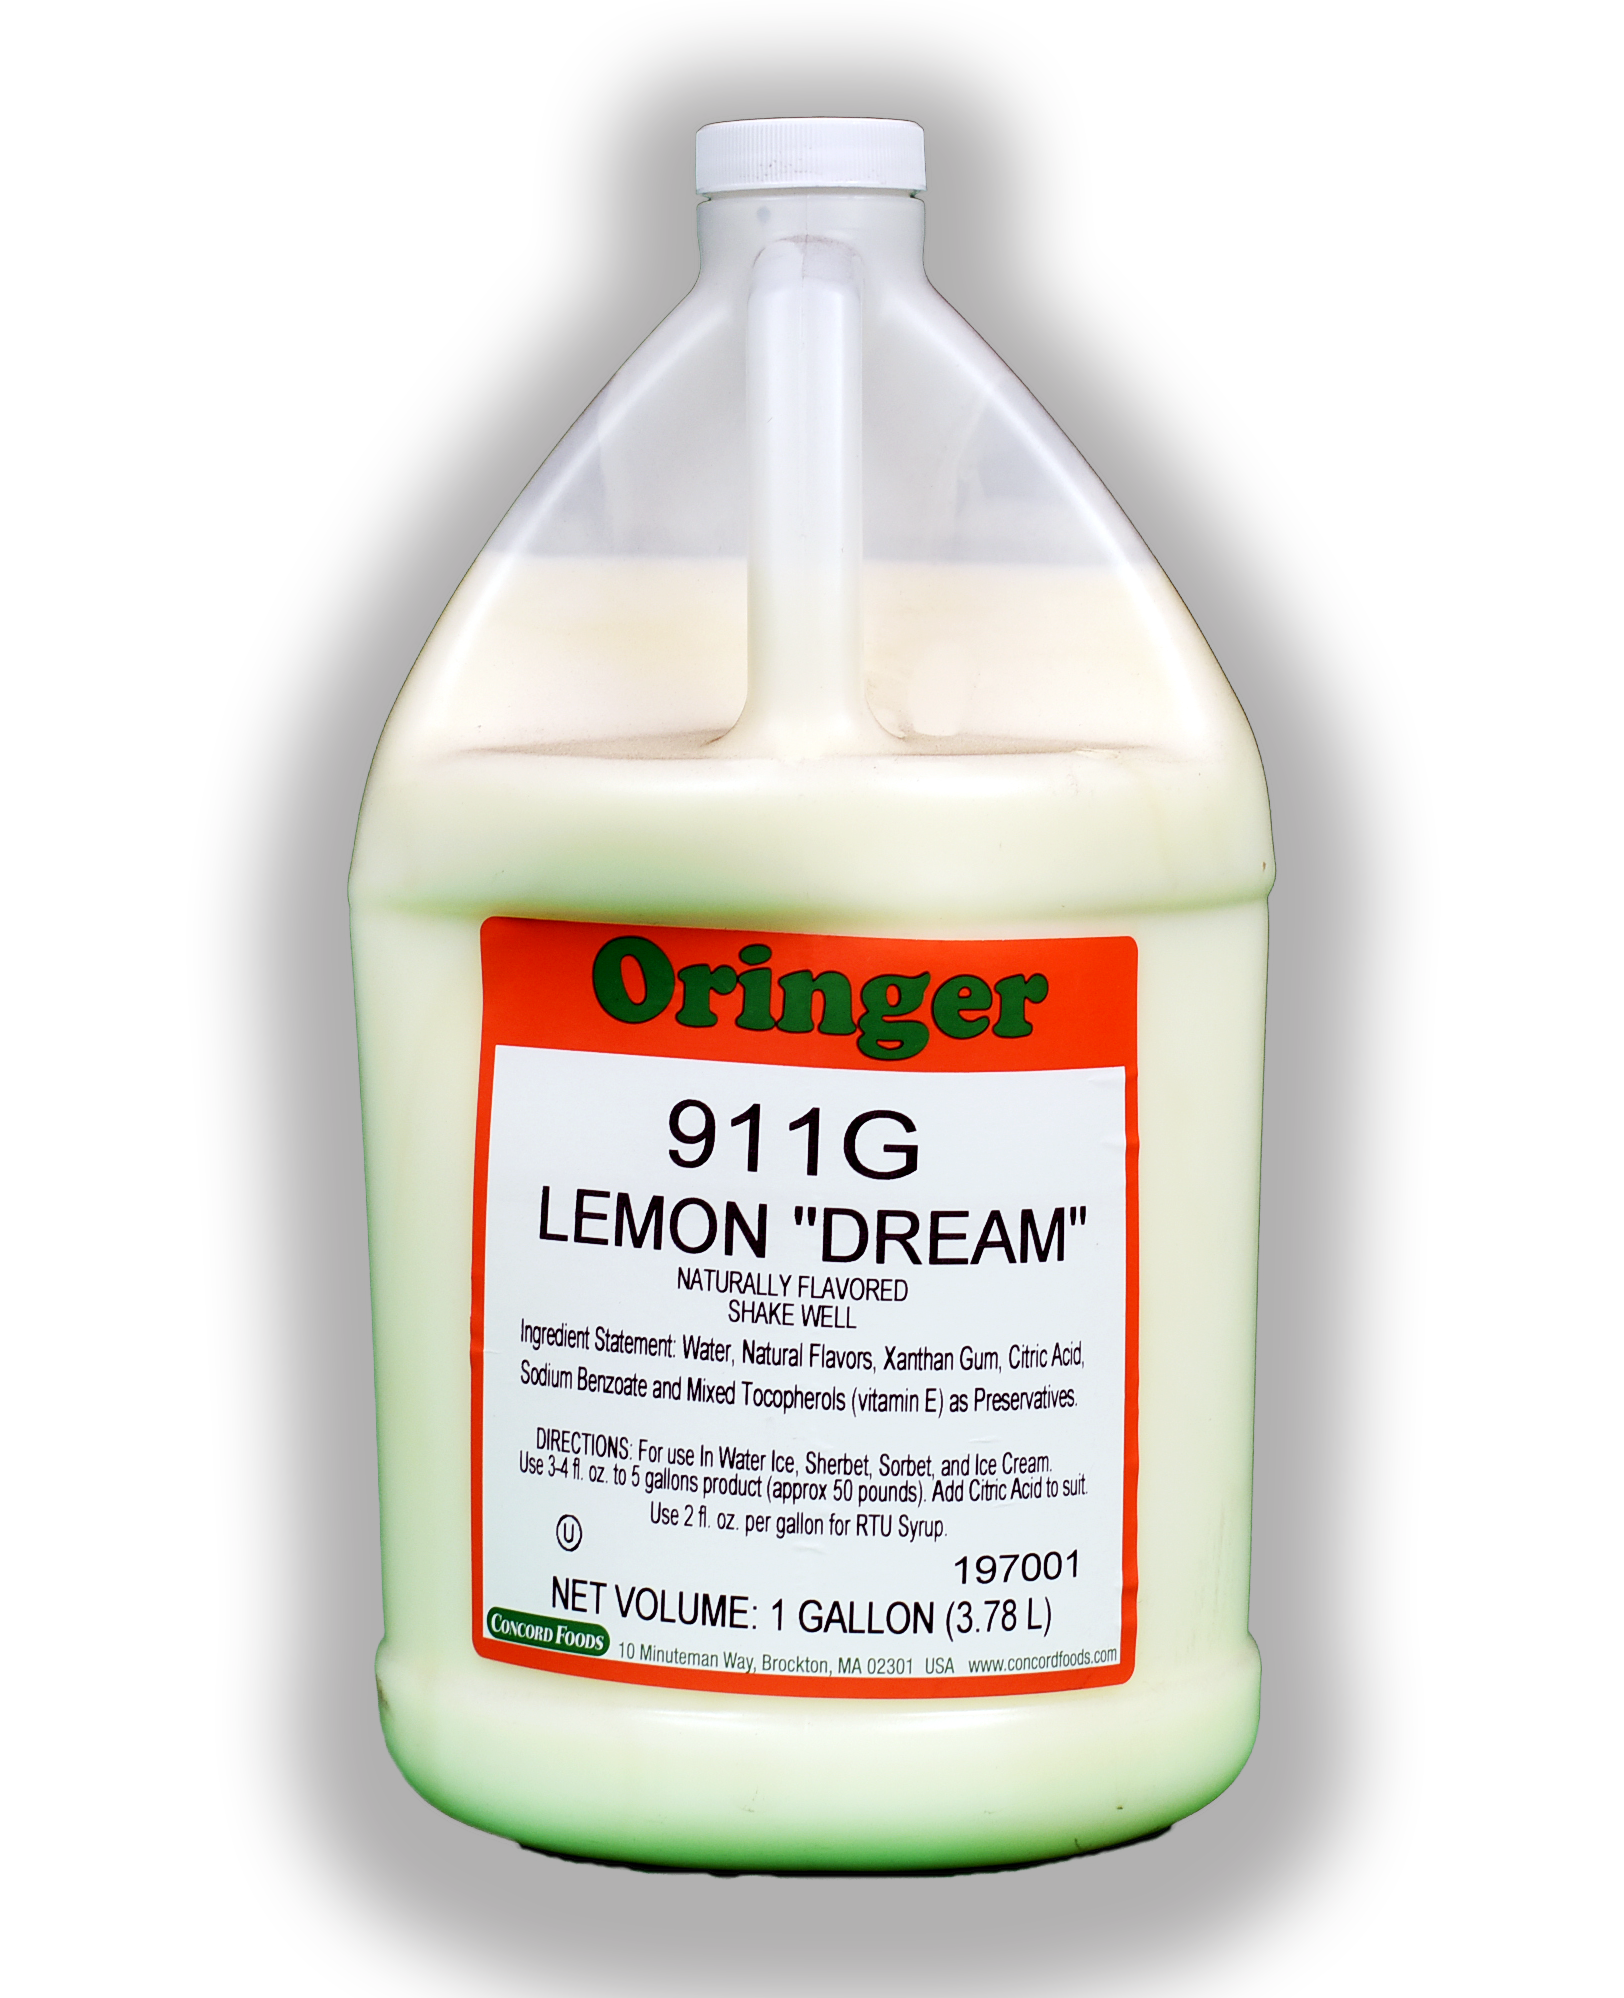 ORG LEMON DREAM FLAVOR